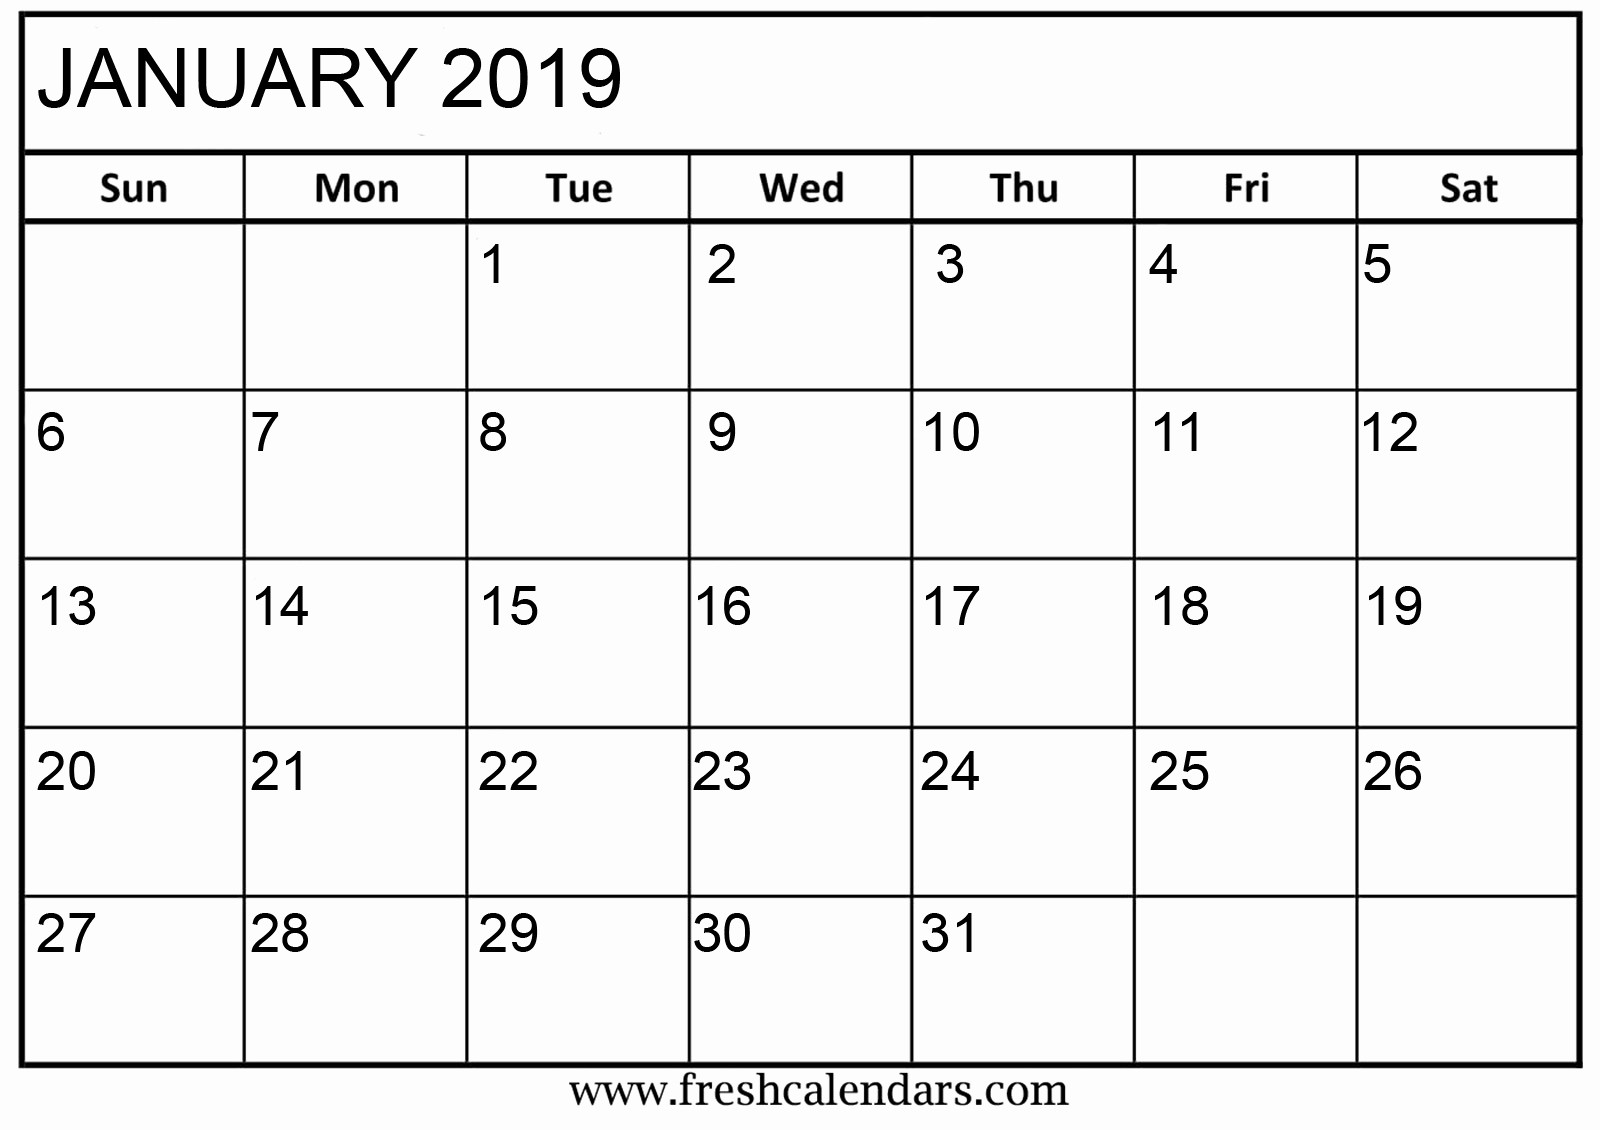 2019 Printable Calendar by Month Unique Printable January 2019 Calendar Fresh Calendars